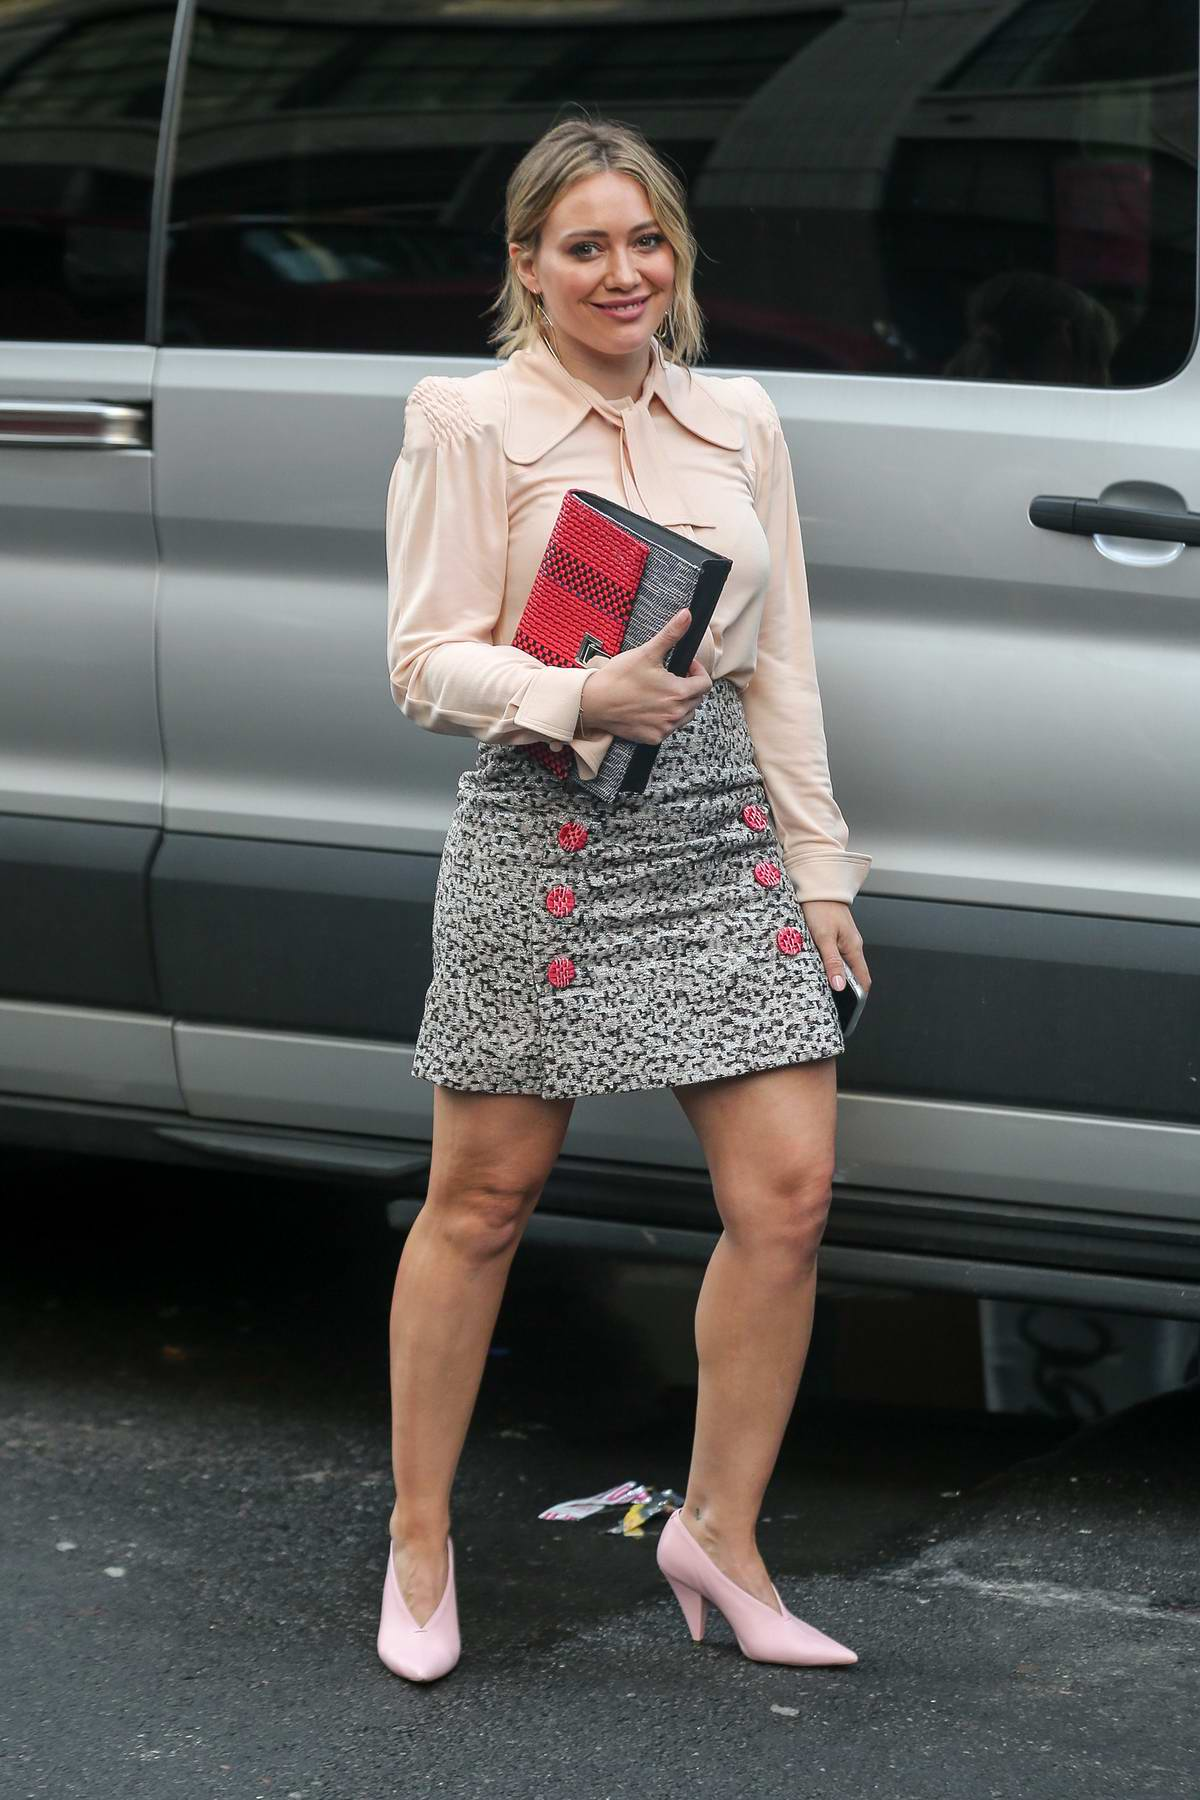 Hilary Duff spotted on the set of the TV show 'Younger' in New York City